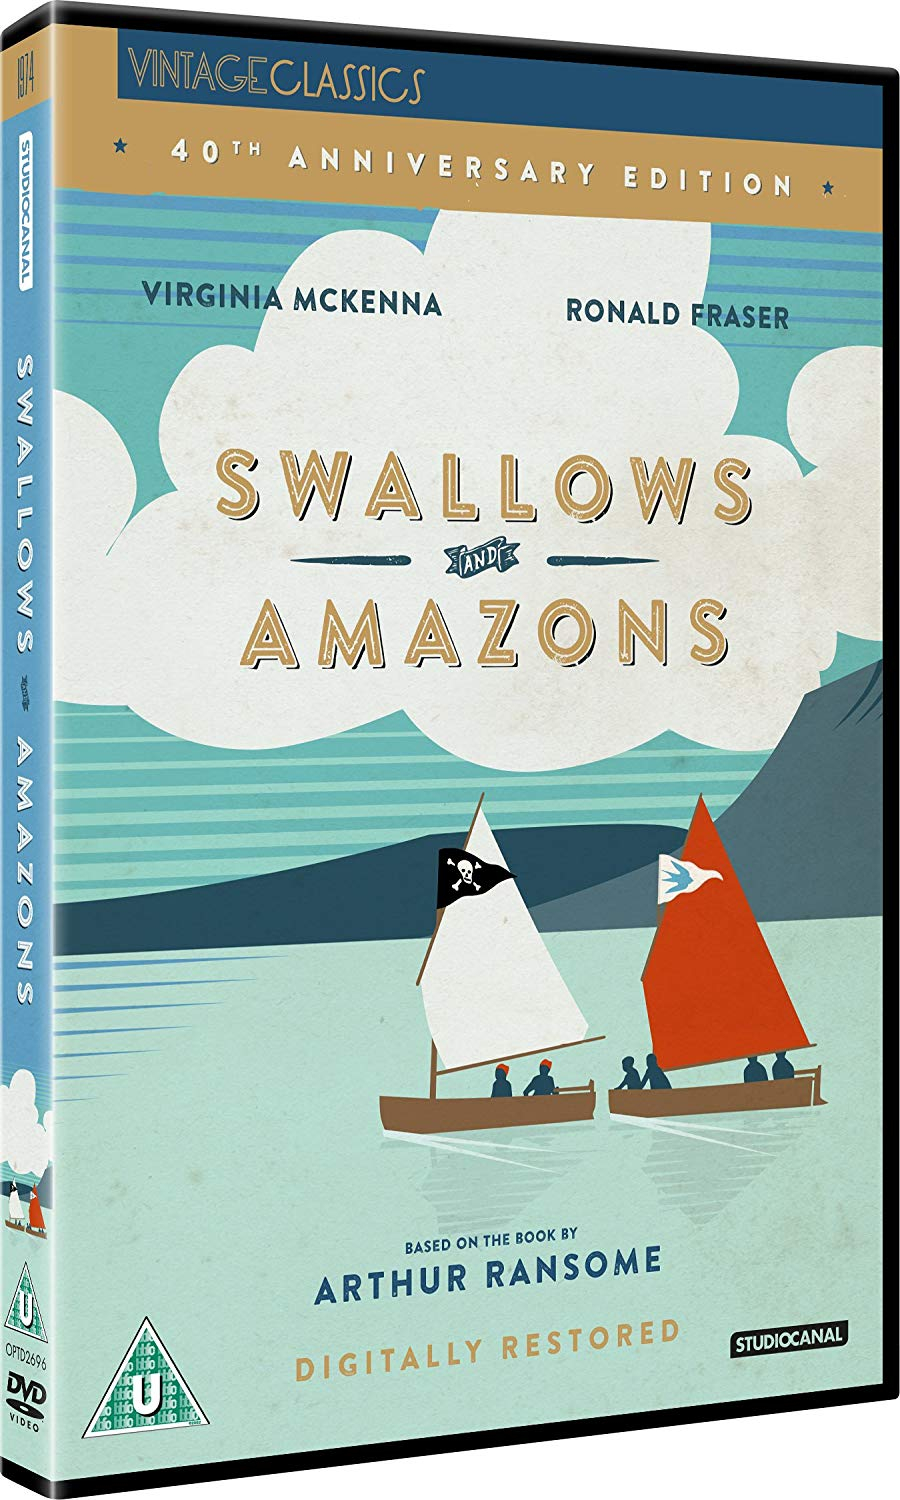 Buy Swallows and Amazons